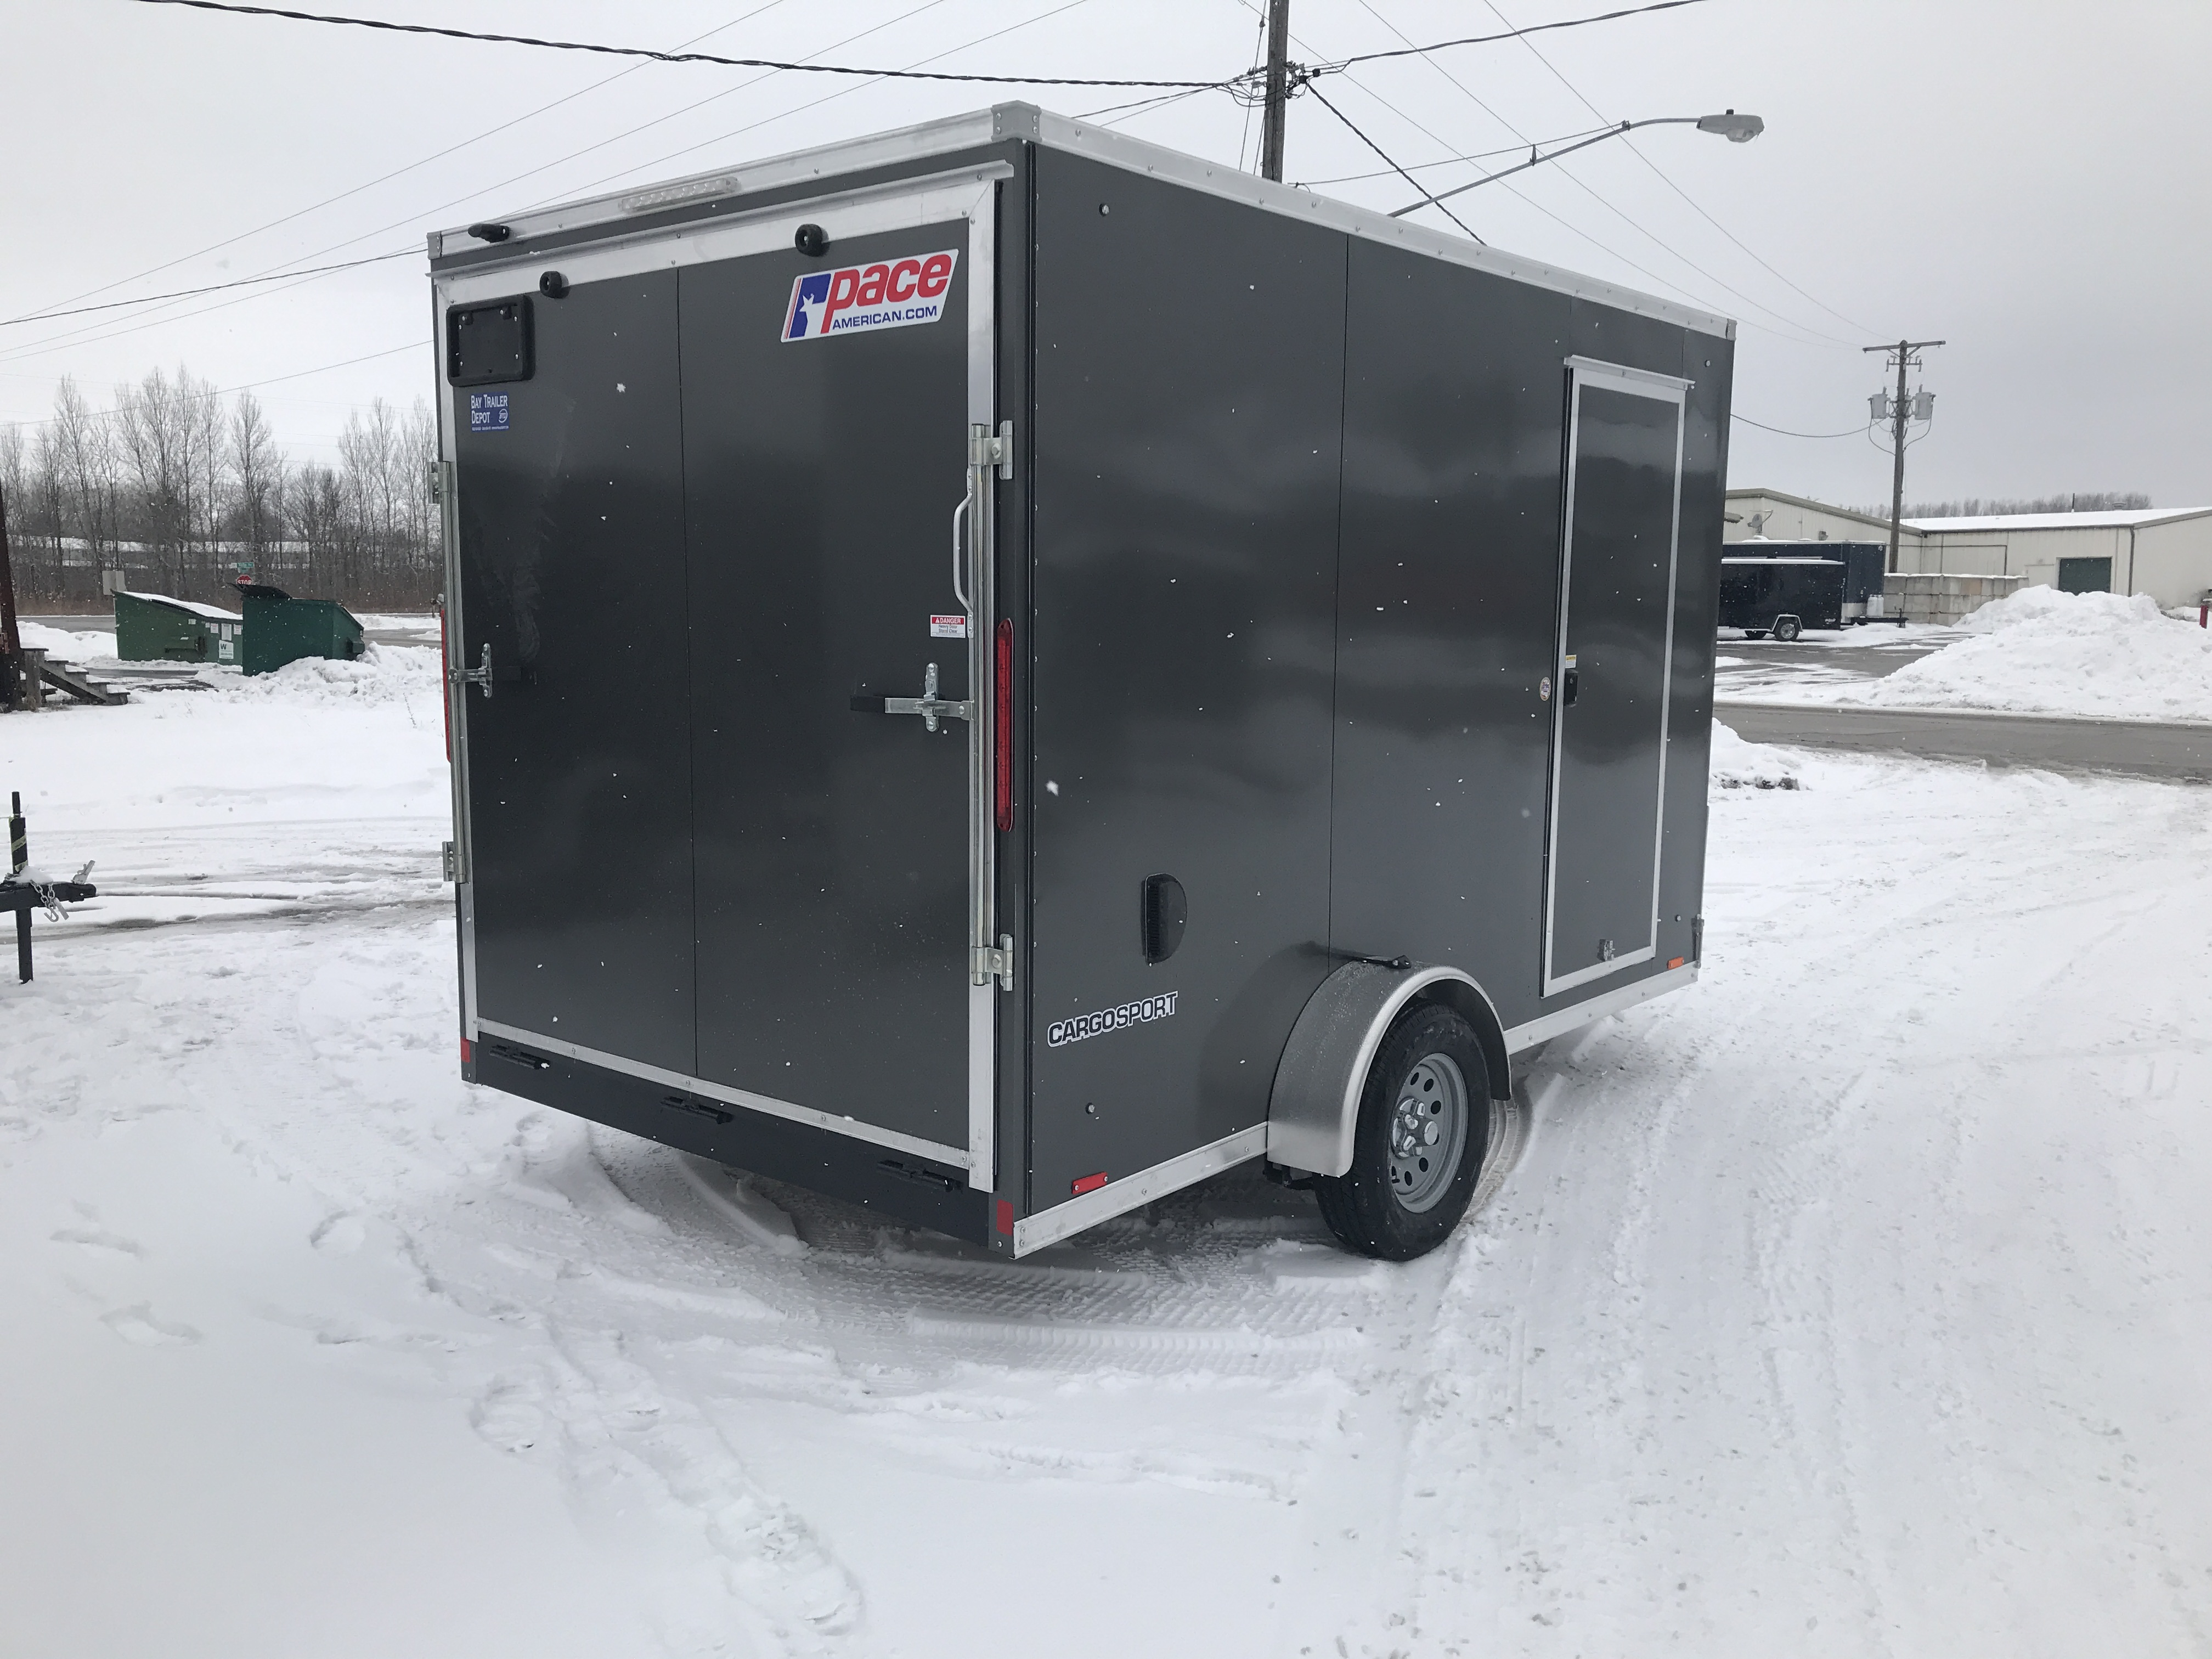 2019 Pace American Cargosport 7 X 12 R12 Charcoal Bay Trailer Wiring Diagram Overview Standard Features